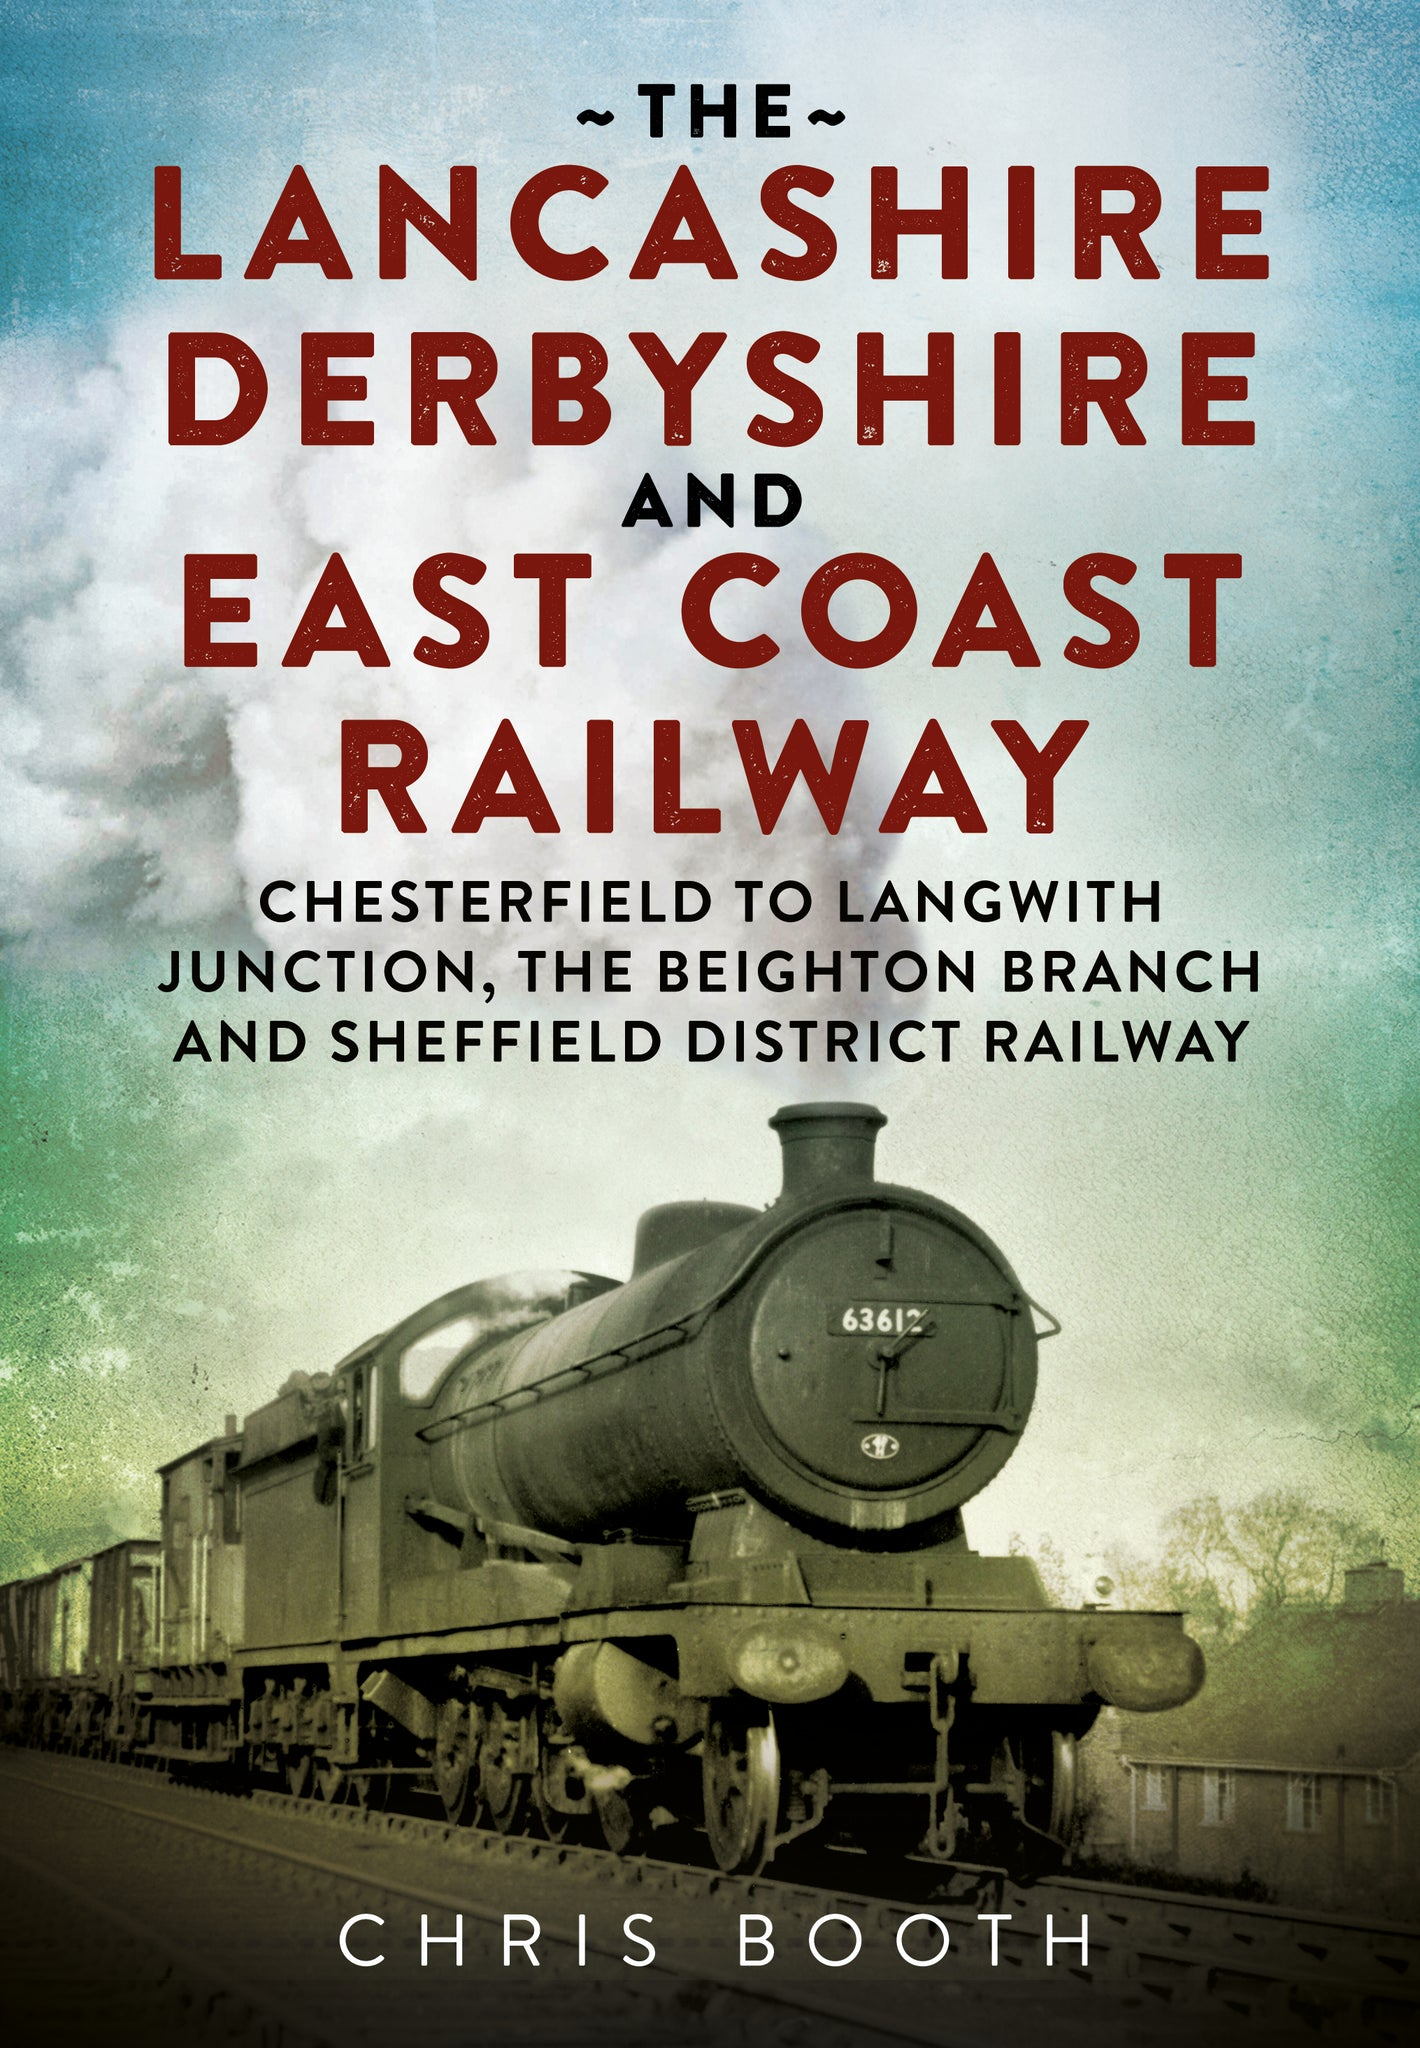 The Lancashire Derbyshire and East Coast Railway: Chesterfield to Langwith Junction, the Beighton Branch and Sheffield District Railway